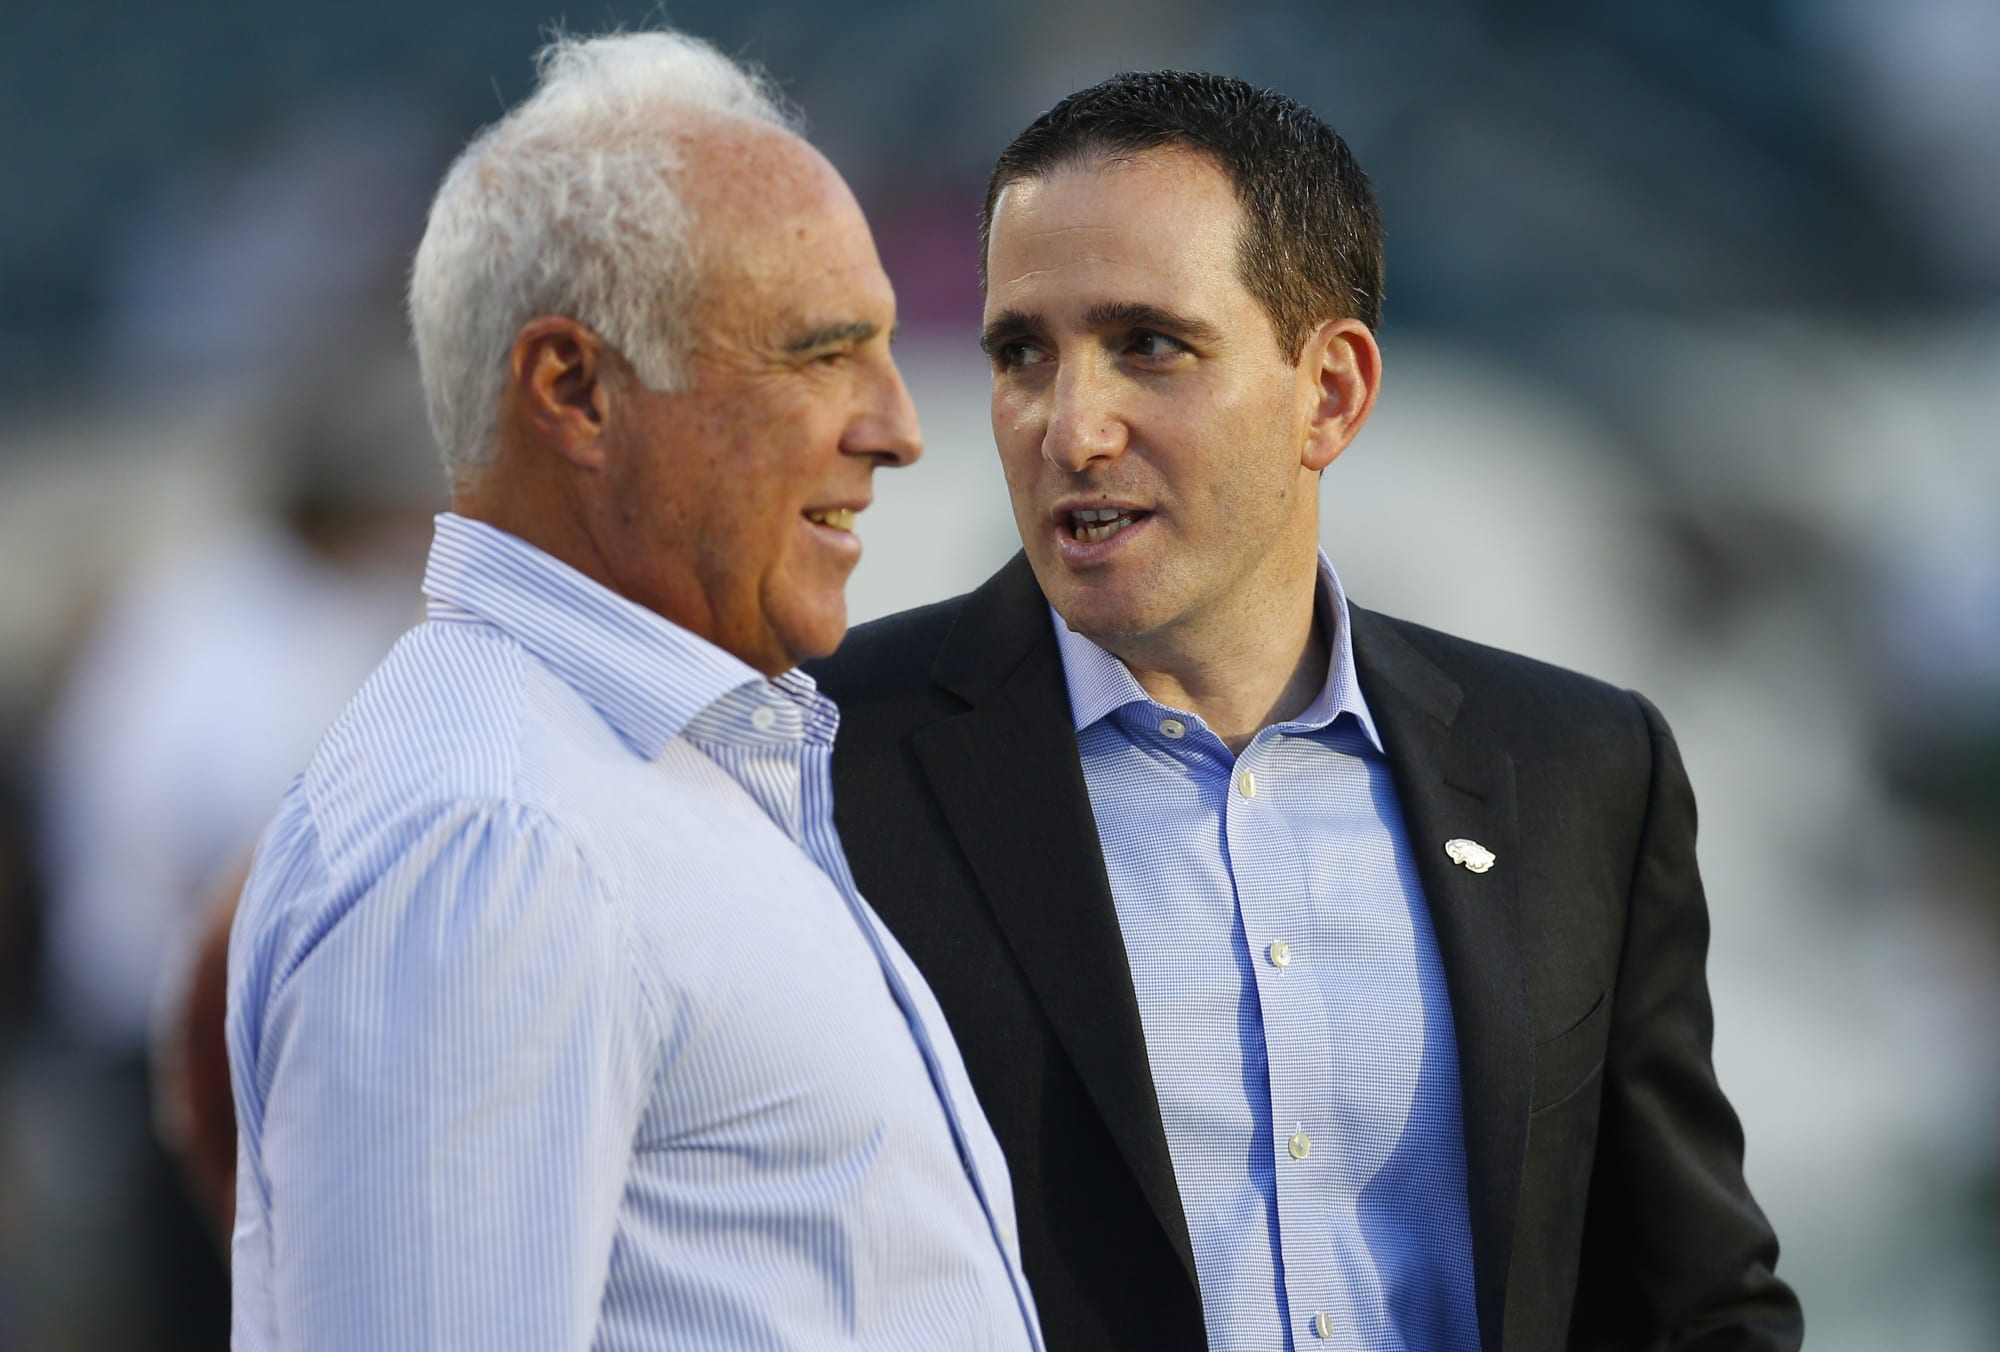 Should Howie Roseman's silence concern Philadelphia Eagles fans?